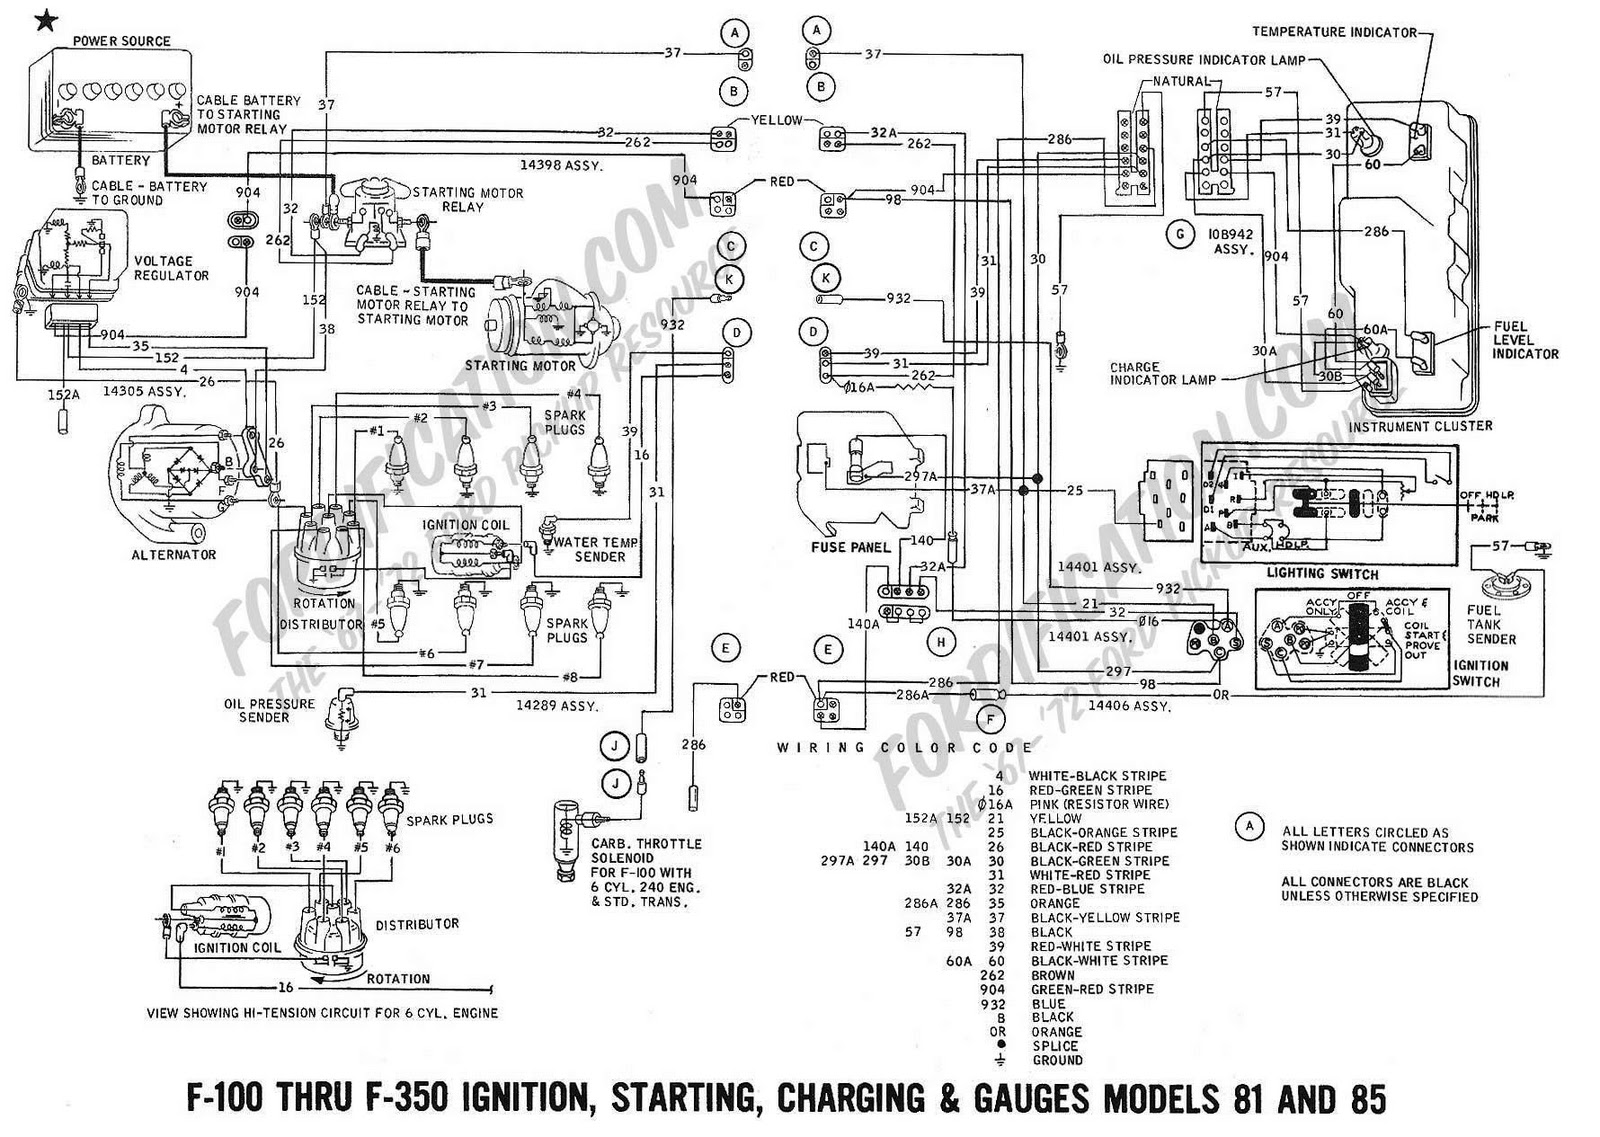 1977 Ford Ltd Wiring Diagram Wiring Diagram Schematics Ford Ignition  Control Module Location Ford Ignition Module Wiring Diagram 1982